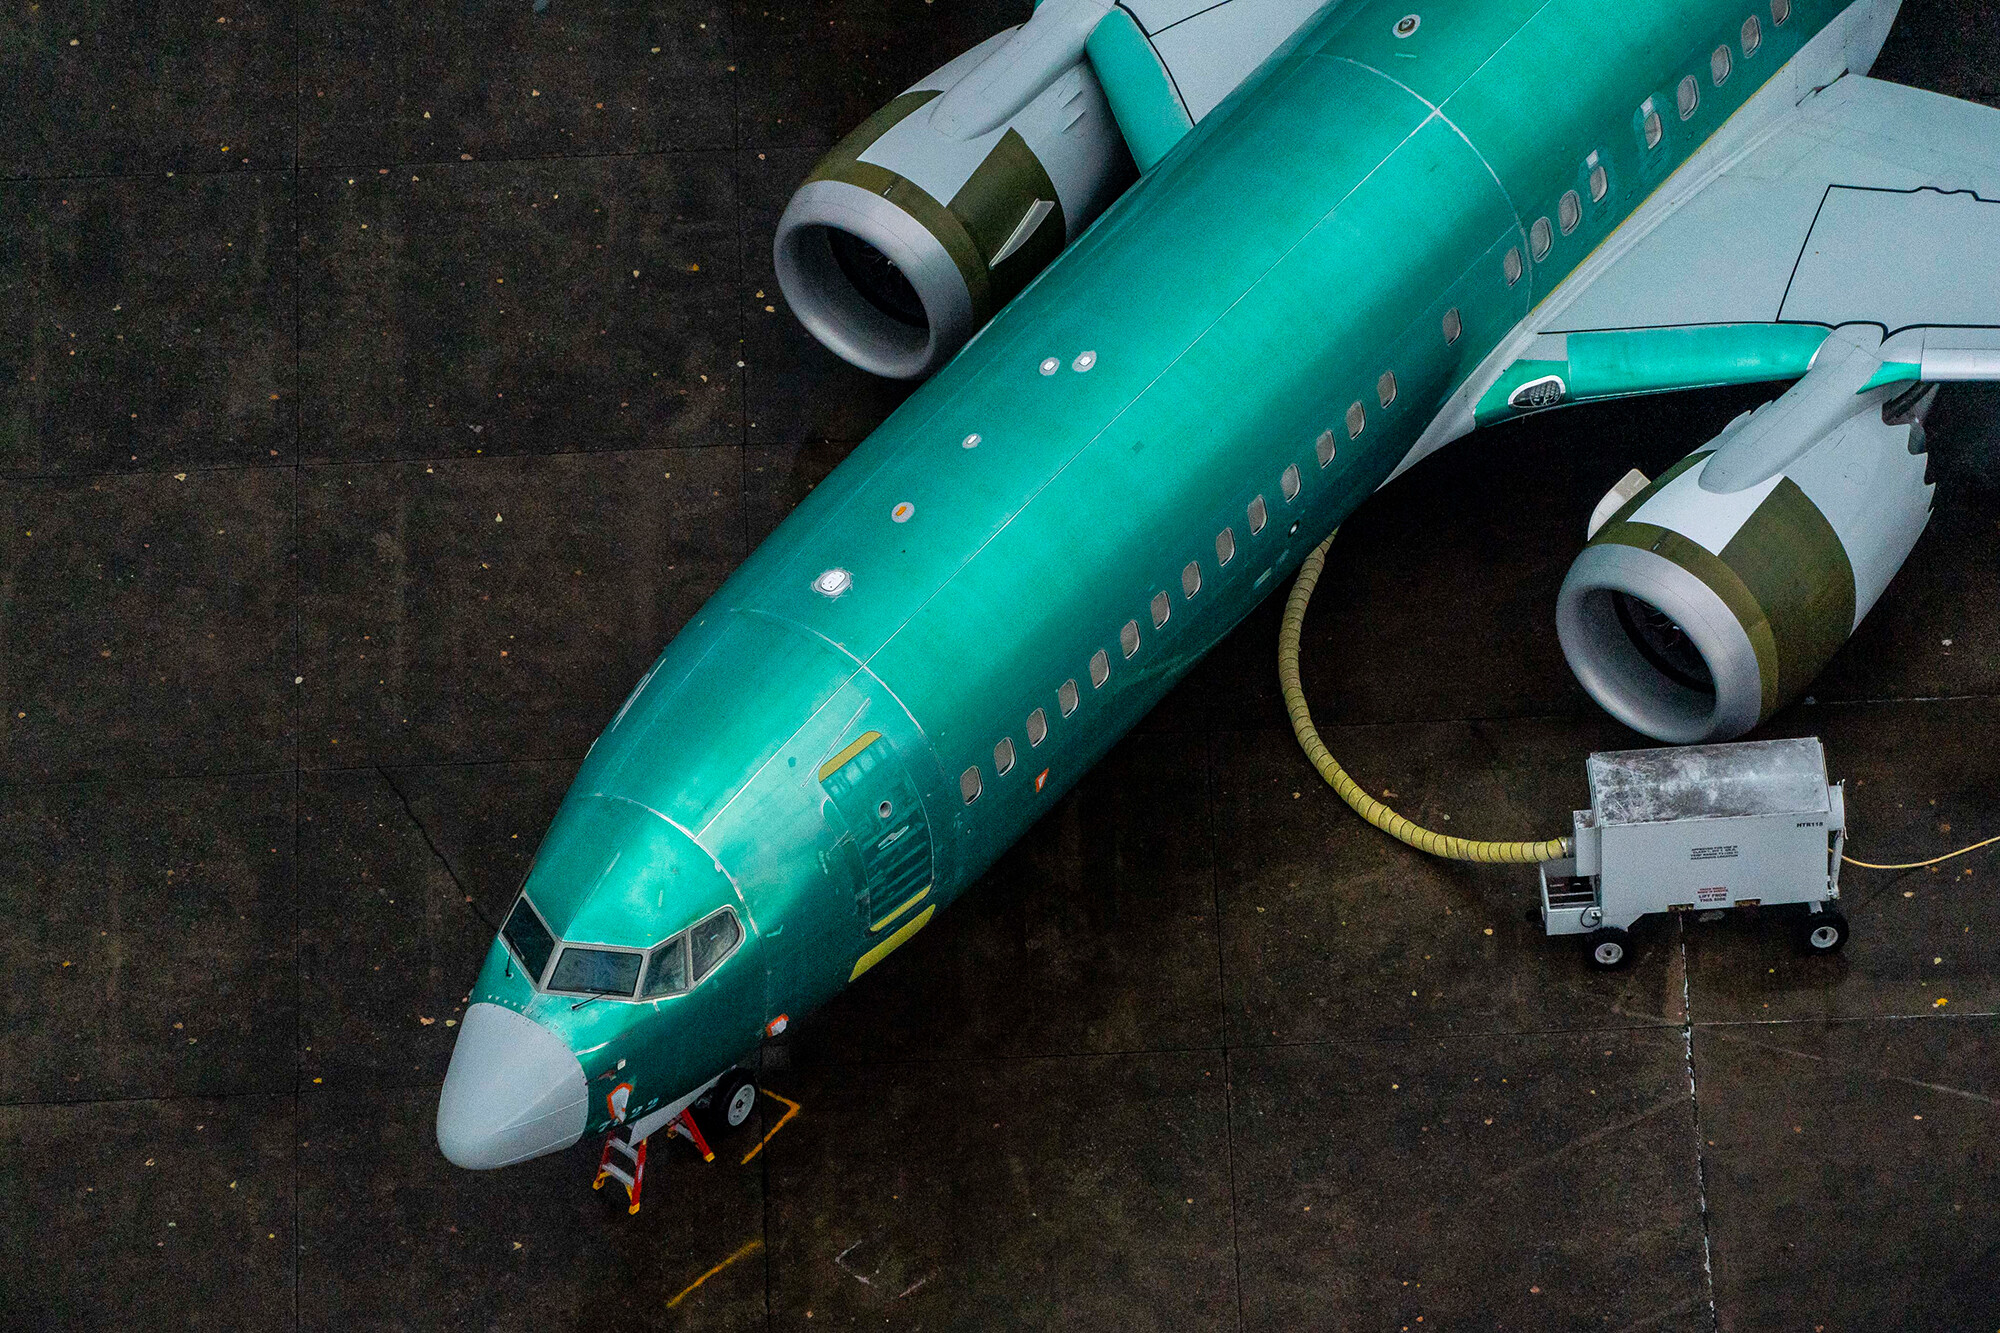 FAA probing whether Boeing employees are being pressured on safety issues